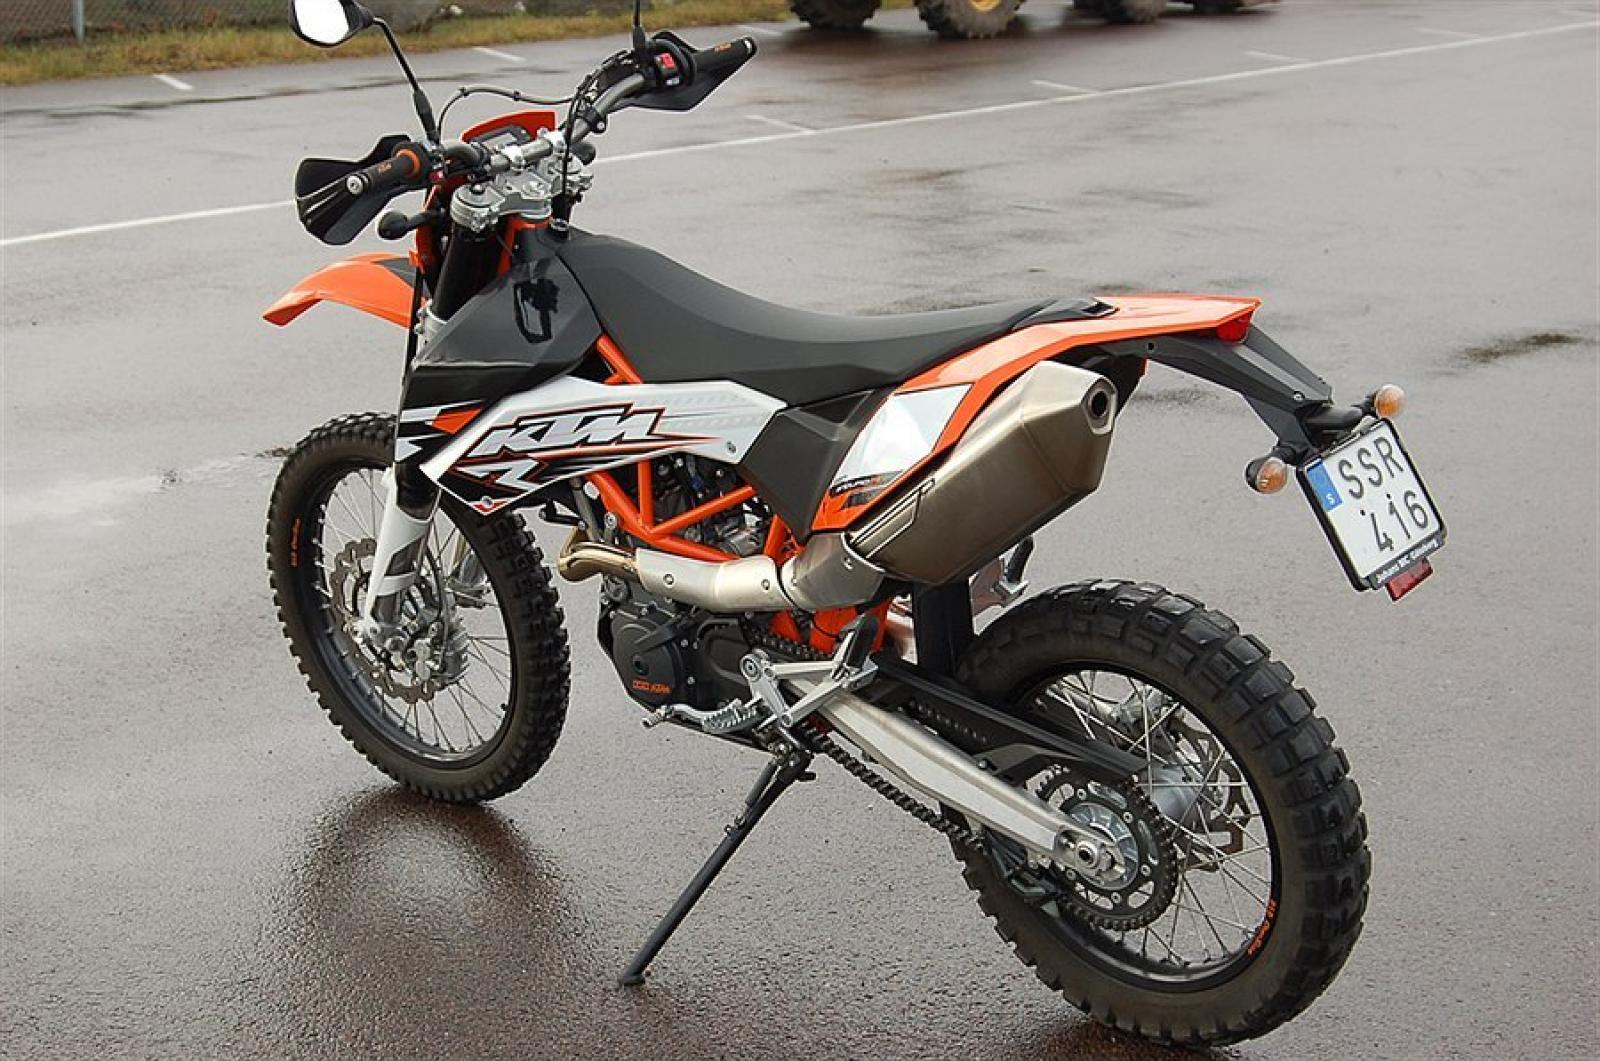 2011 ktm 690 enduro r moto zombdrive com. Black Bedroom Furniture Sets. Home Design Ideas